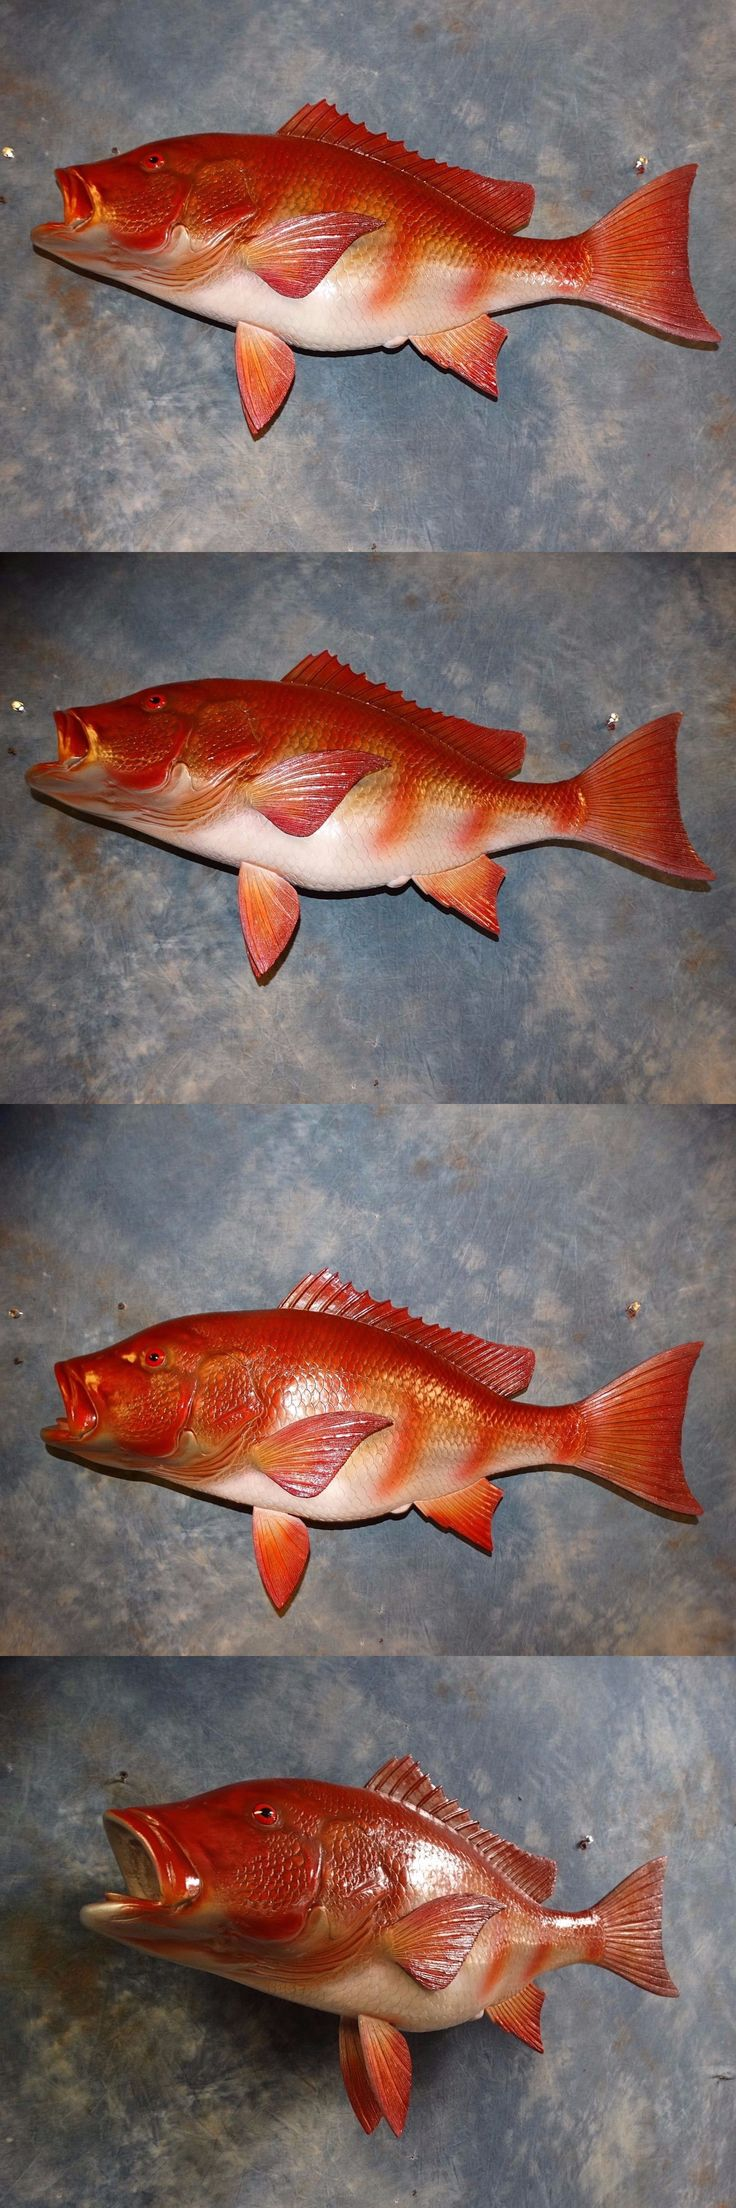 Fish 71127: 32 Brand New Two Sided Red Snapper Quality Reproduction Fish Taxidermy Mount -> BUY IT NOW ONLY: $395 on eBay!